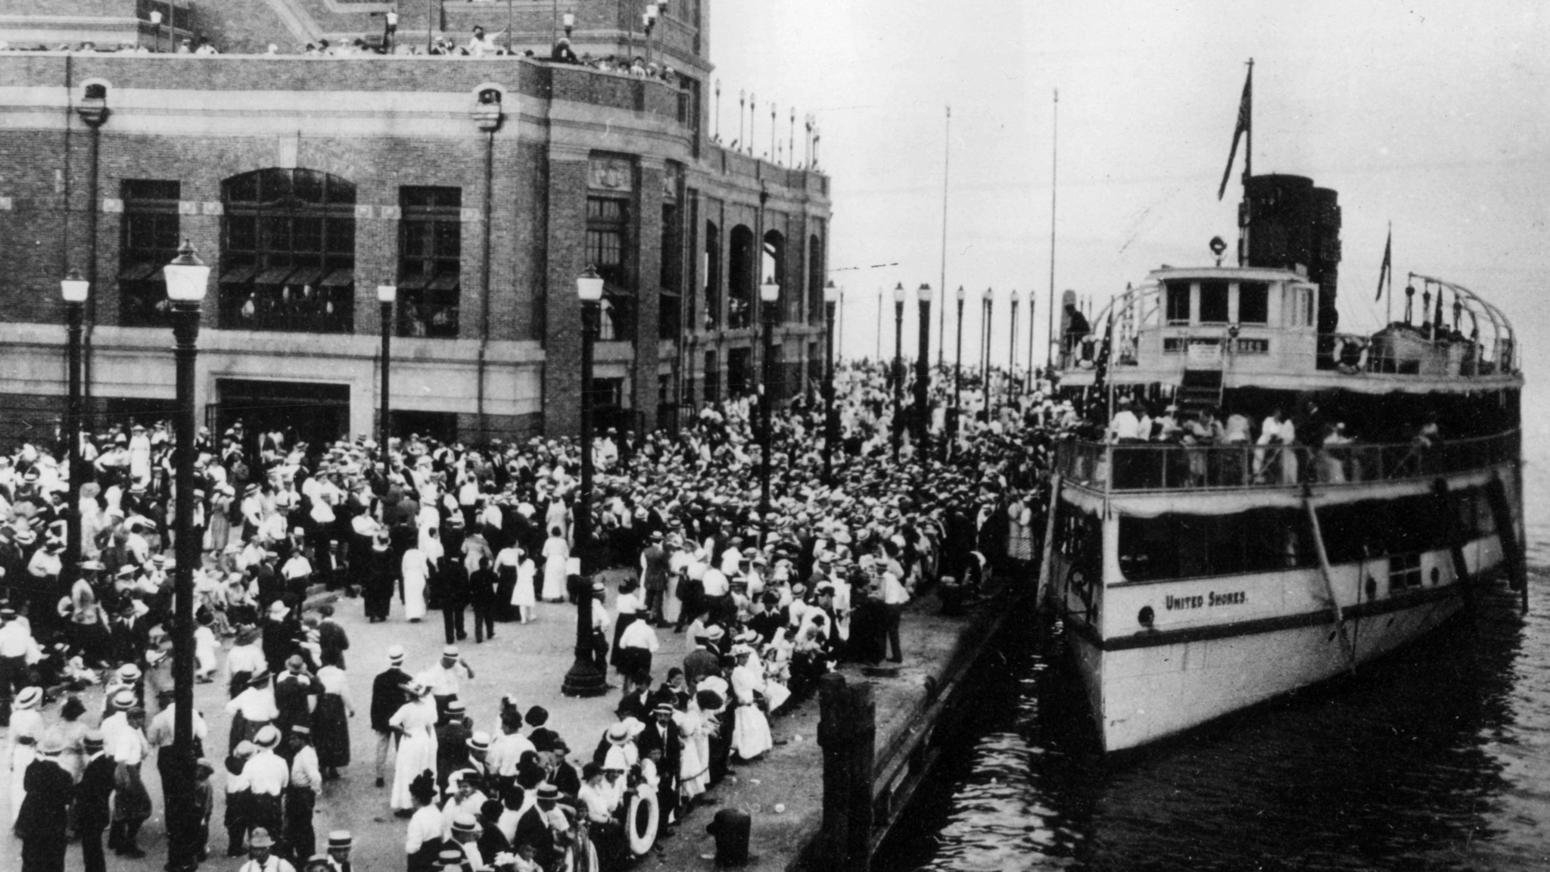 Navy Pier shortly after opening day in July 1916. Chicago Tribune photo. Steamers took passengers round trip from the Pier to Lincoln Park or Jackson Park for 35 cents. Chicago Tribune photo.